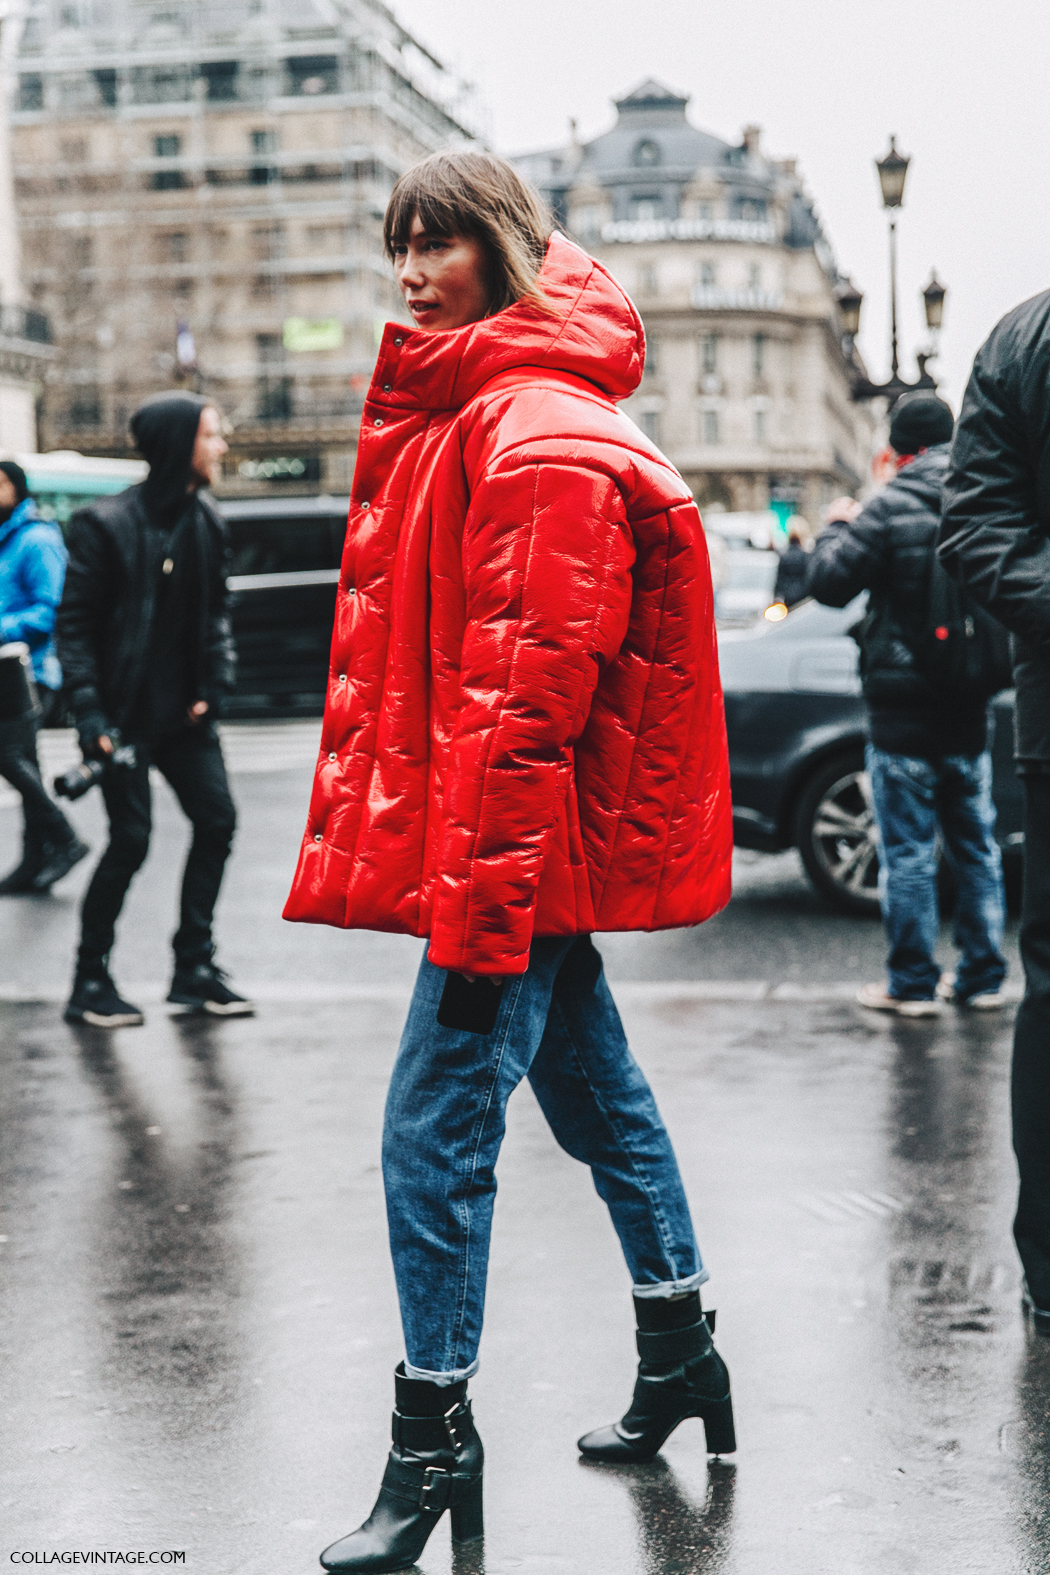 PFW-Paris_Fashion_Week_Fall_2016-Street_Style-Collage_Vintage-Stella_McCartney-Anya_Ziourova-Red_Coat-4